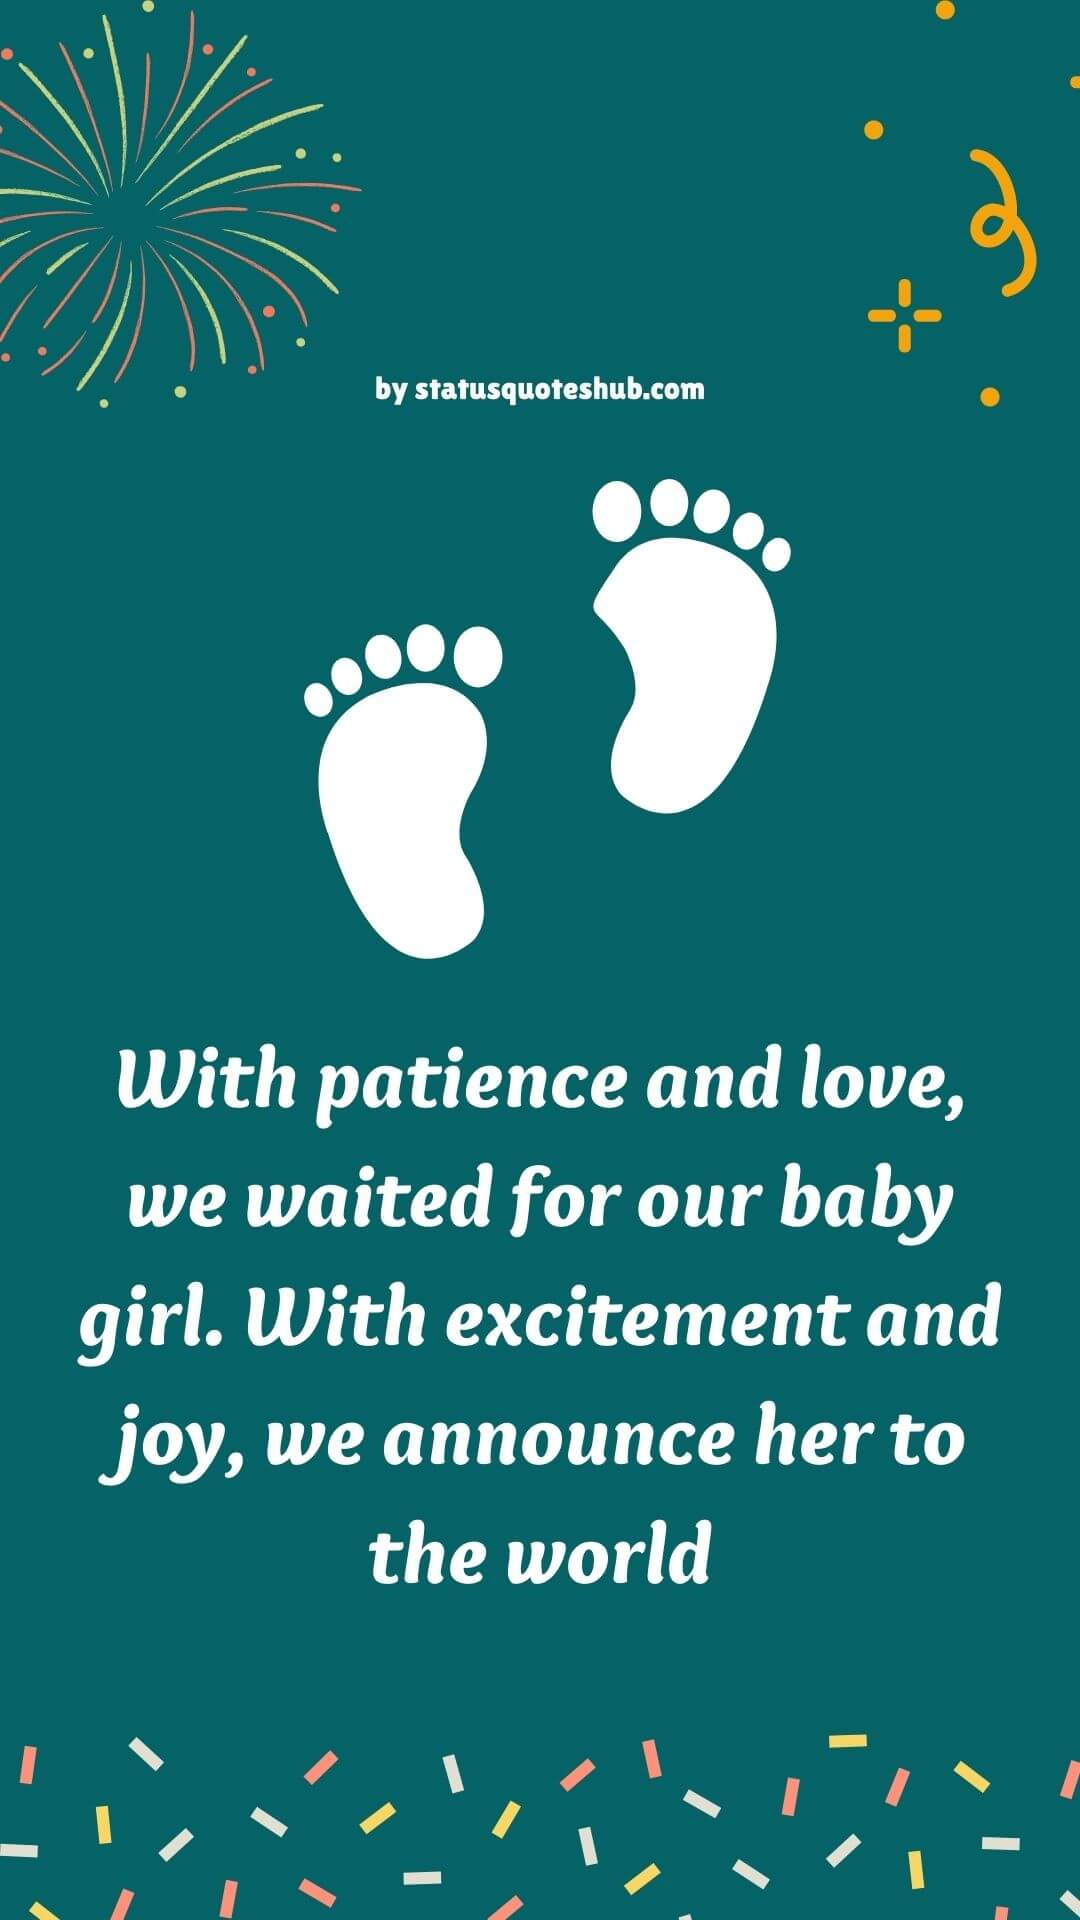 how do you announce a new born baby girl